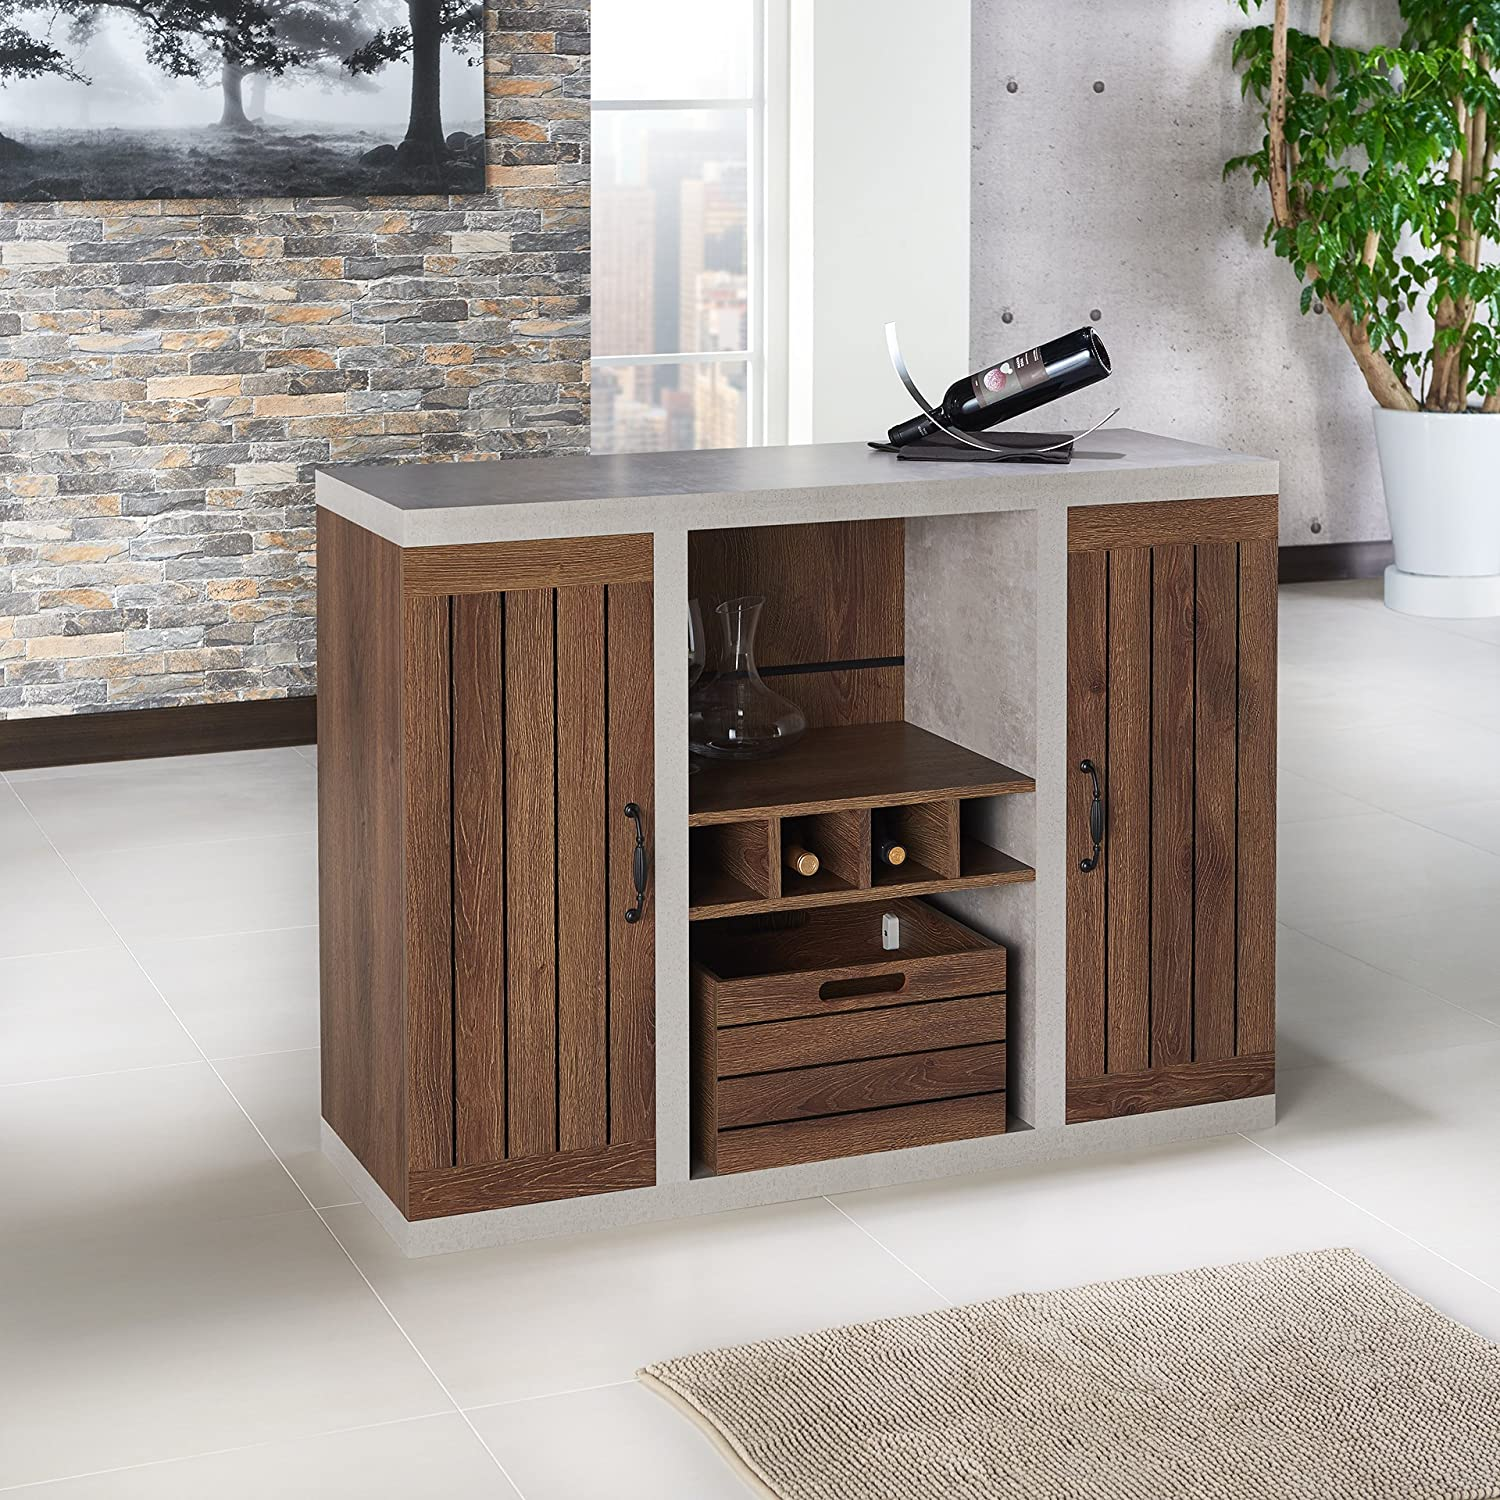 Slatted Drawer and Cabinets Distressed Walnut and Cement Wine Bottle Holder ioHOMES Cato Industrial Two-Tone Buffet with Open Shelf